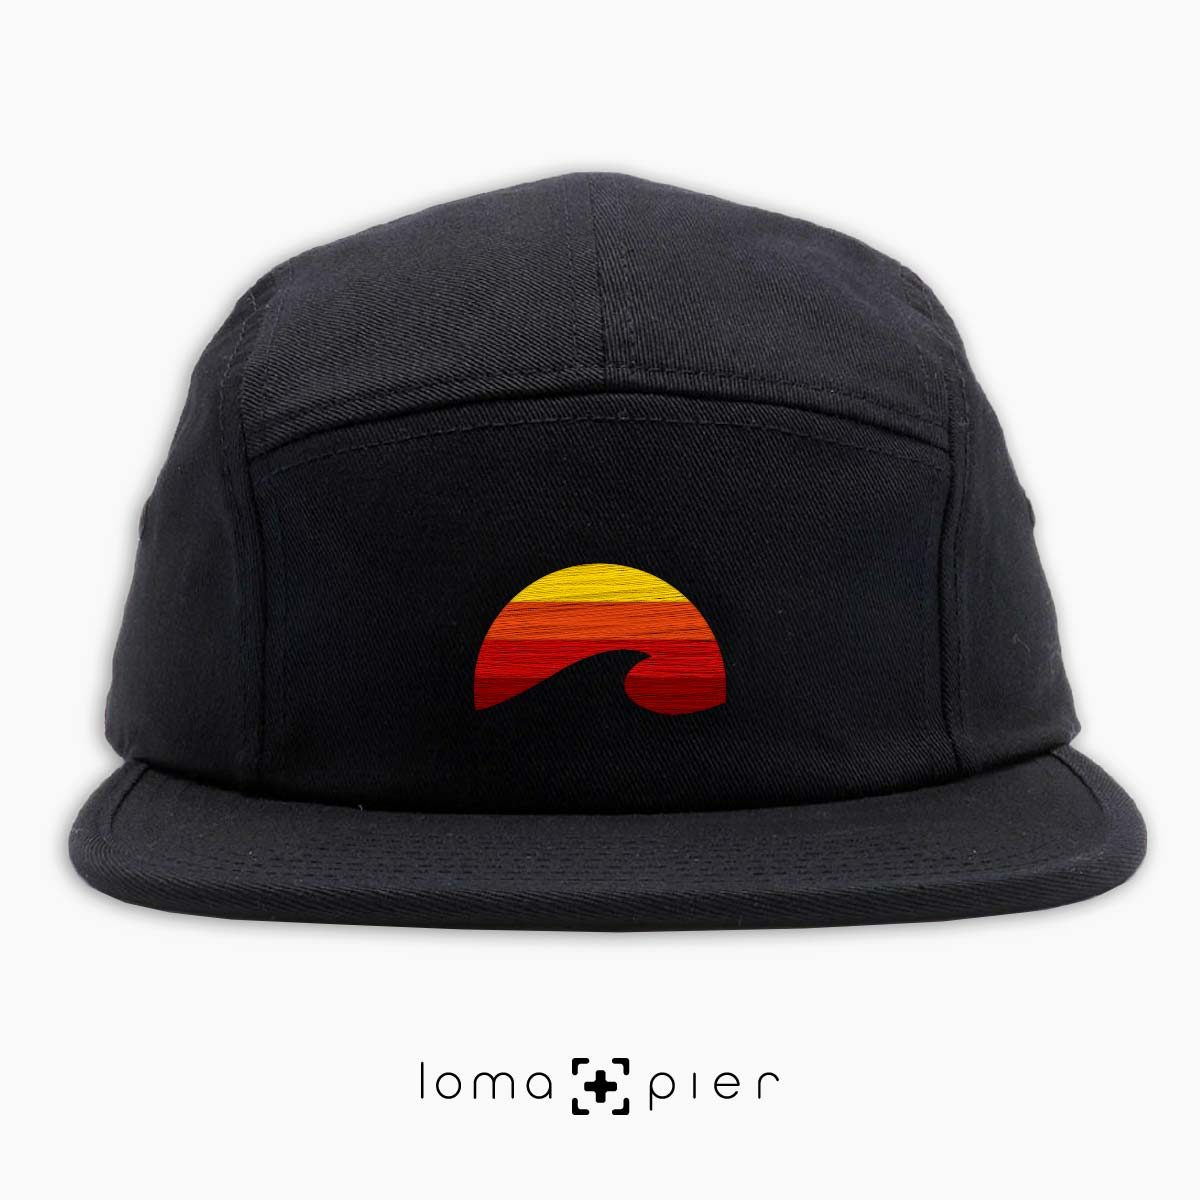 PACIFIC SUN icon embroidered on a black cotton 5-panel hat by loma+pier hat store